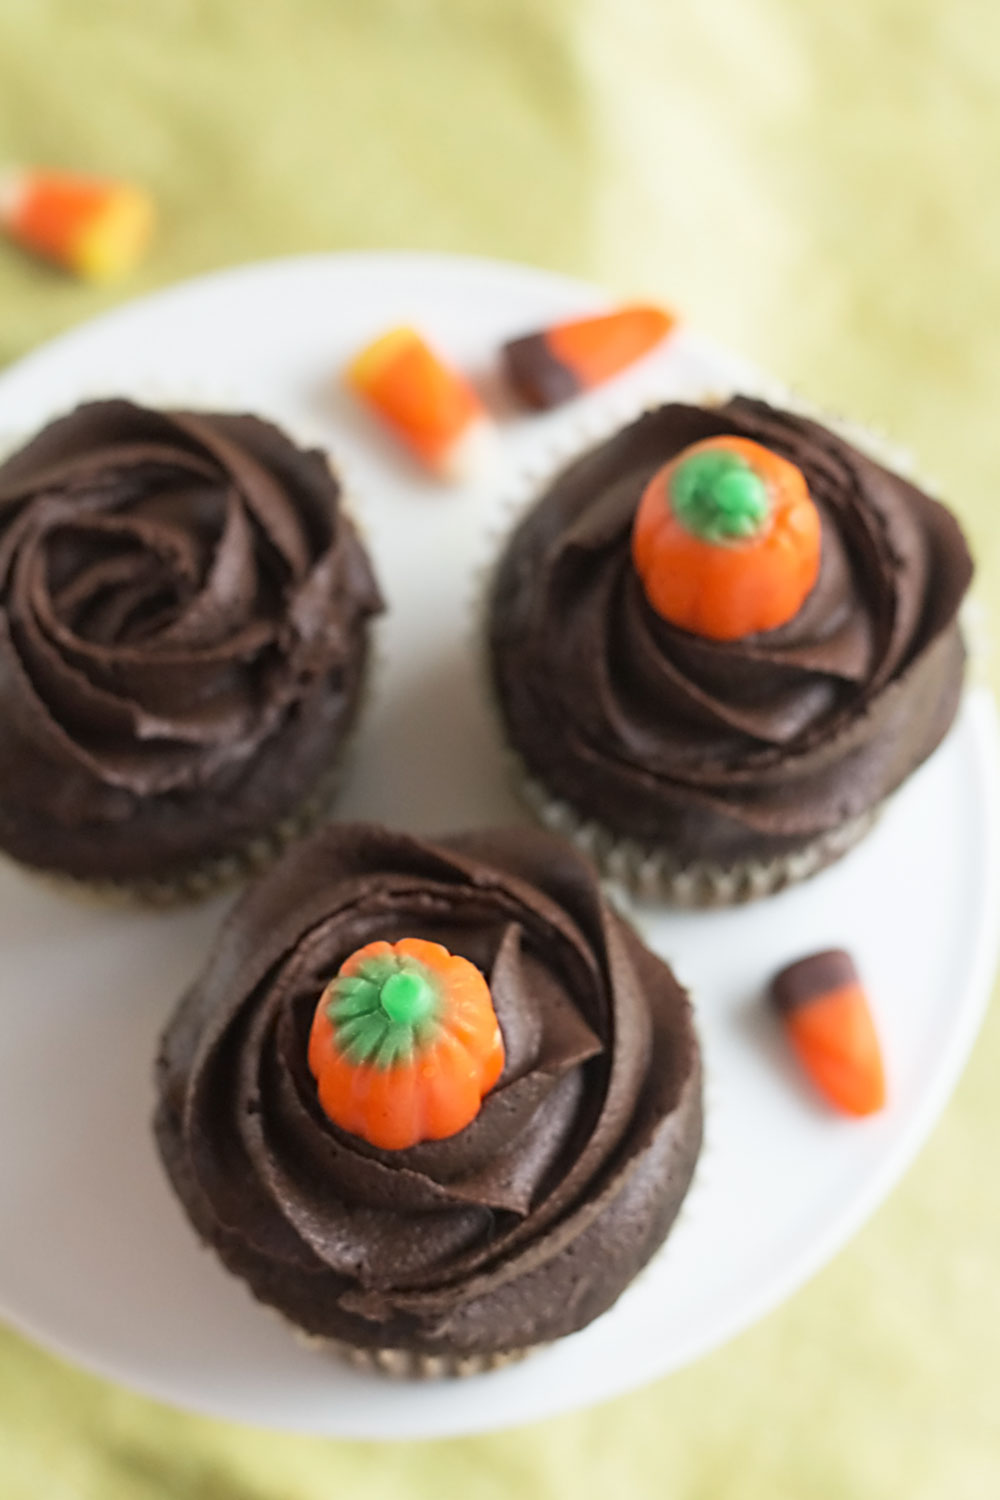 Pumpkin Chocolate Cupcakes, made from scratch! Rich chocolate cupcakes, made with real pumpkin puree, topped with whipped chocolate ganache frosting. Recipe on itsyummi.com